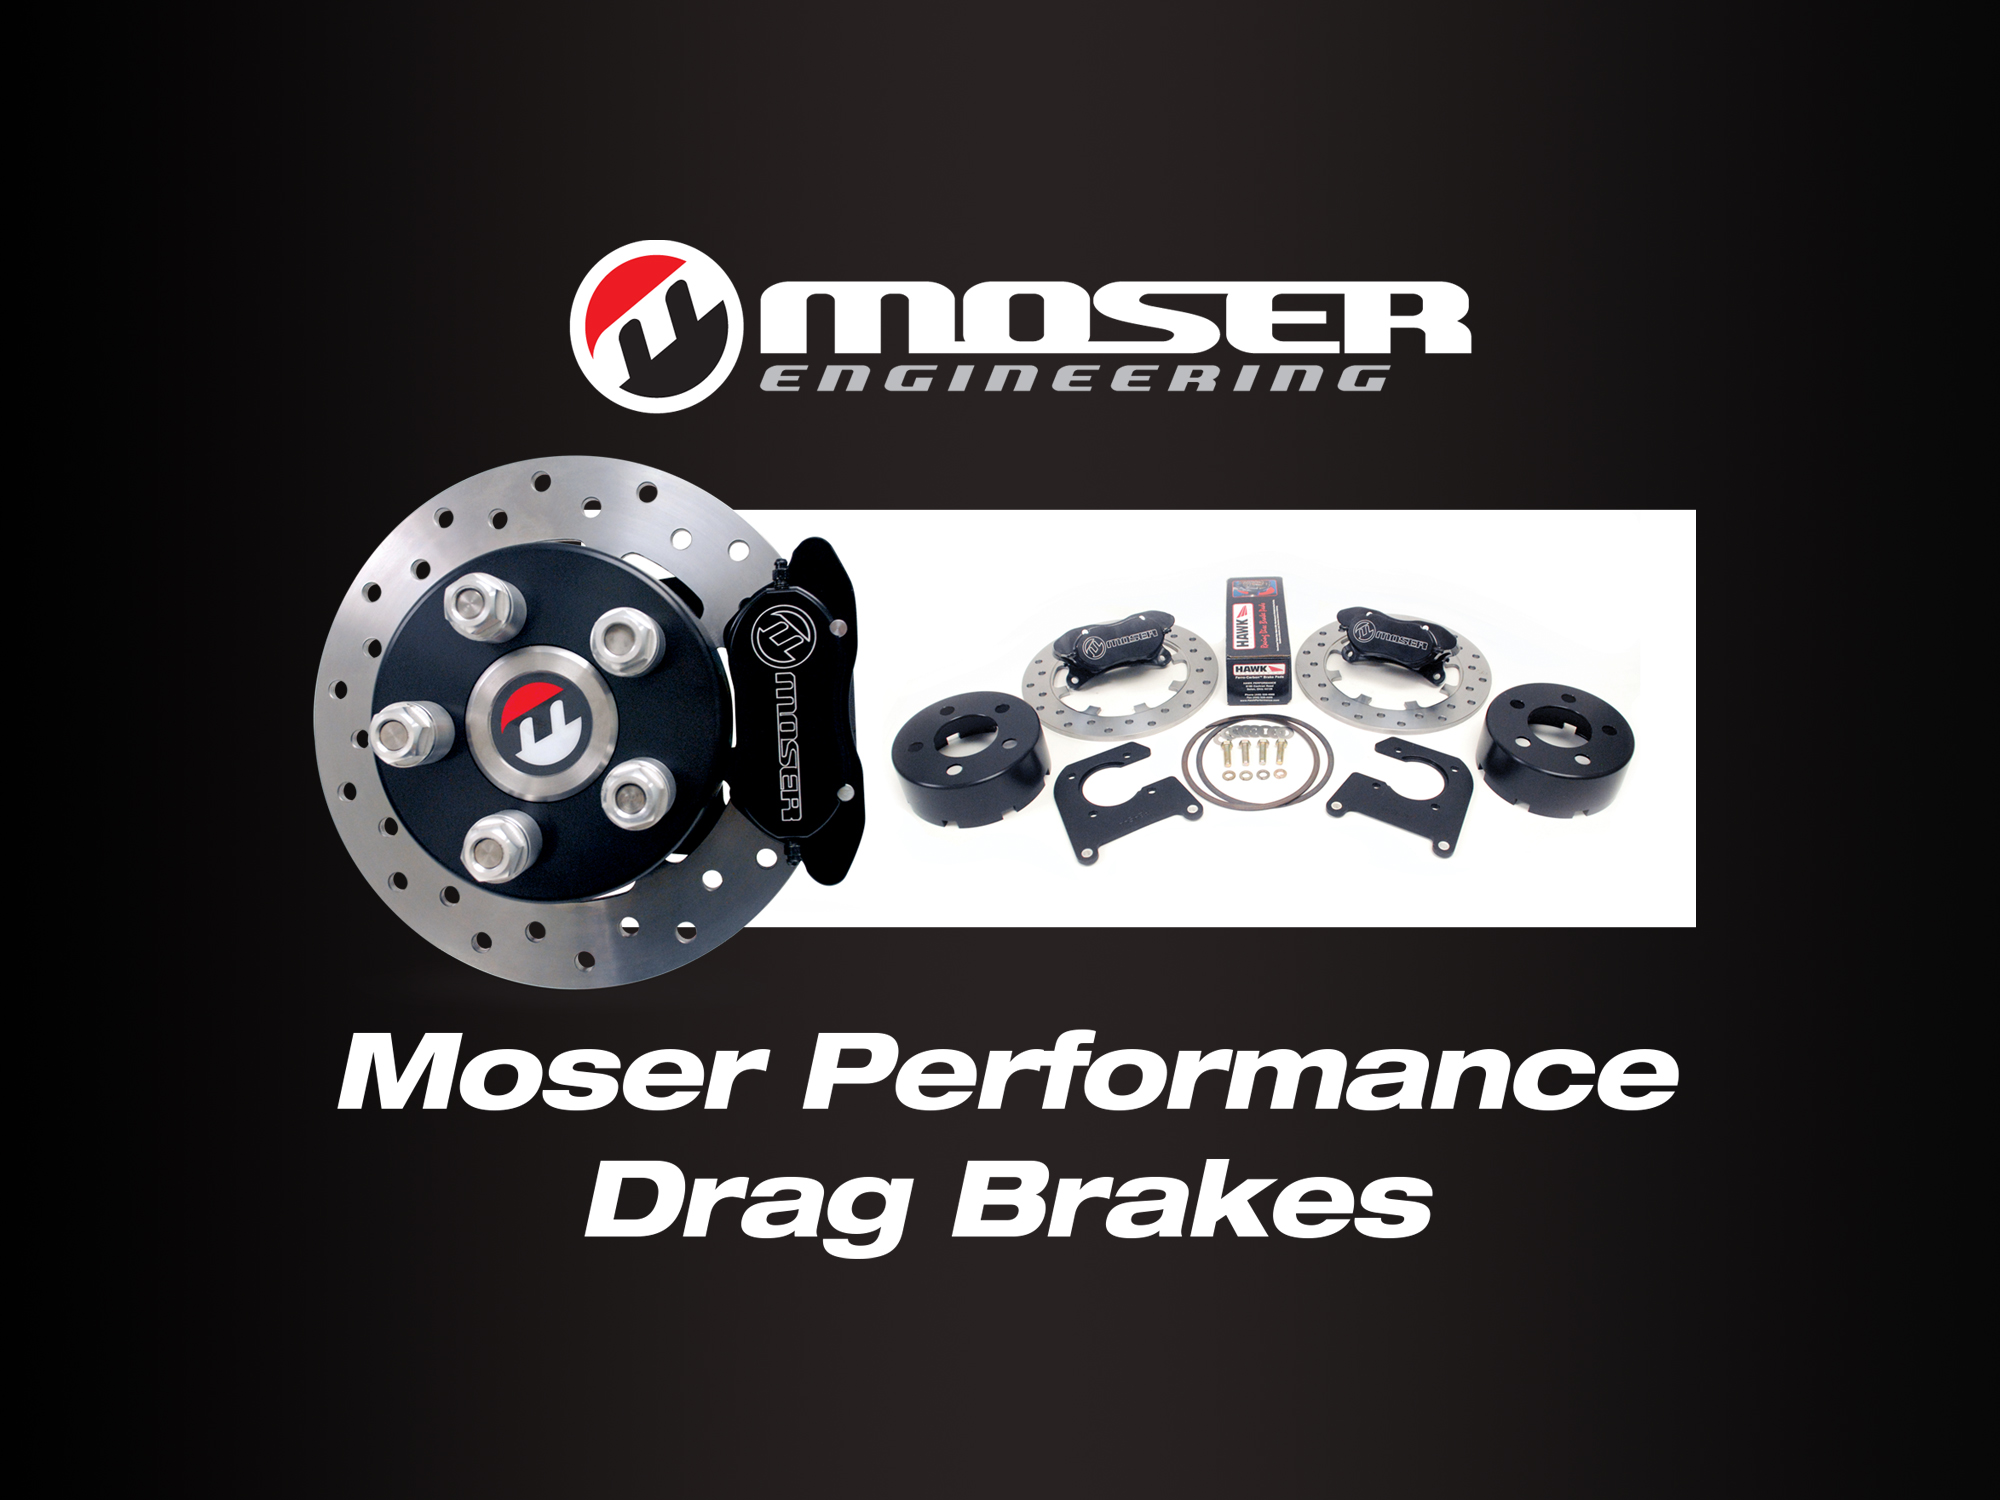 Moser Performance Drag Brakes